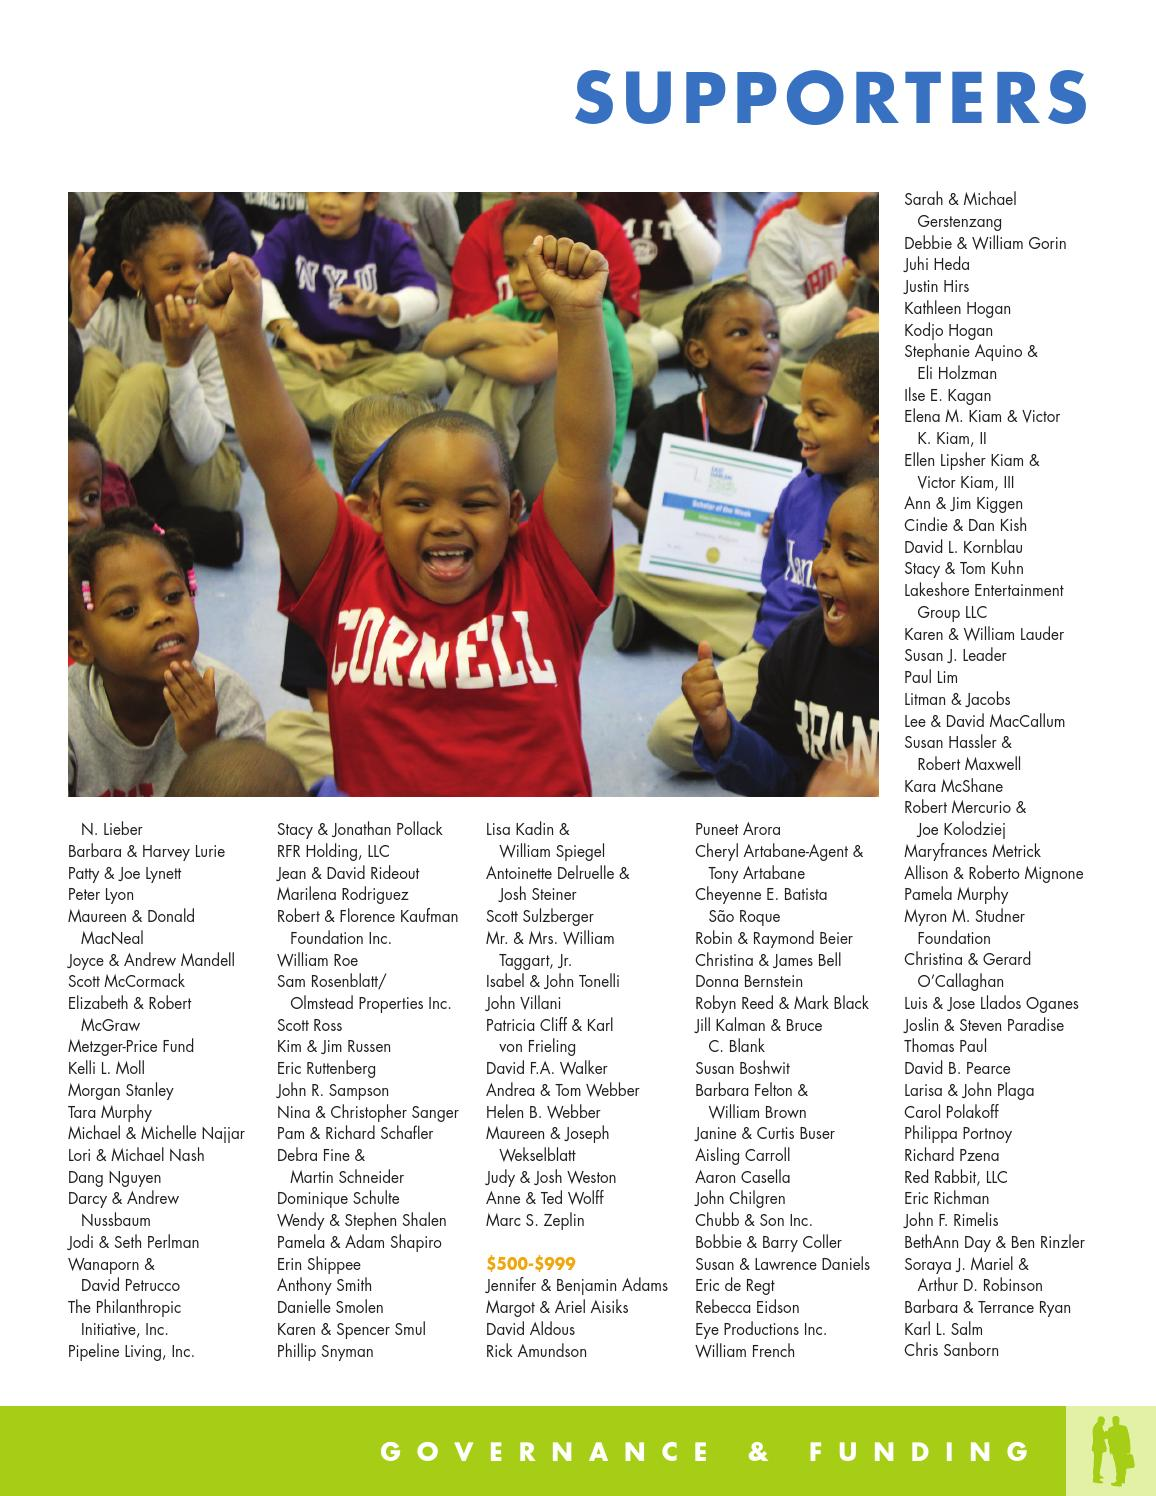 EHTP Annual Report 2013 by East Harlem Tutorial Program - issuu